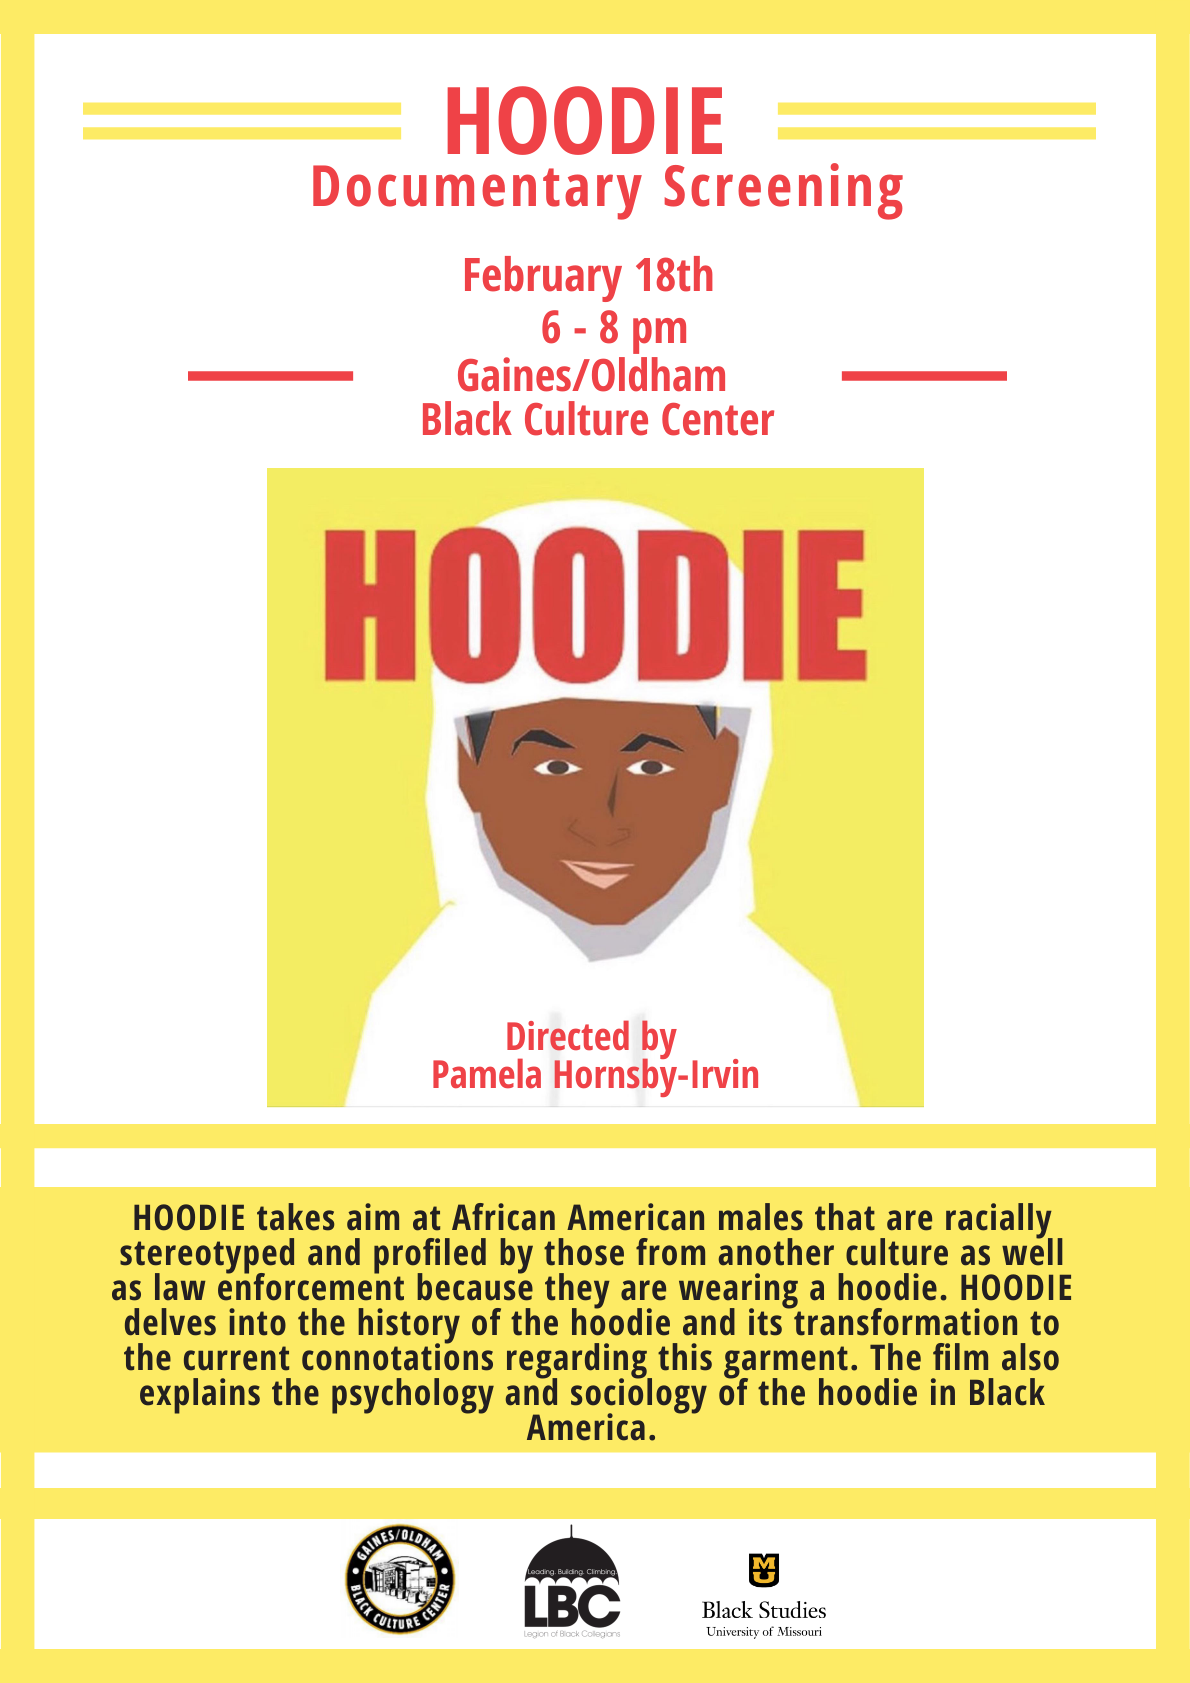 Hoodie flyer featuring information below pulled into text.